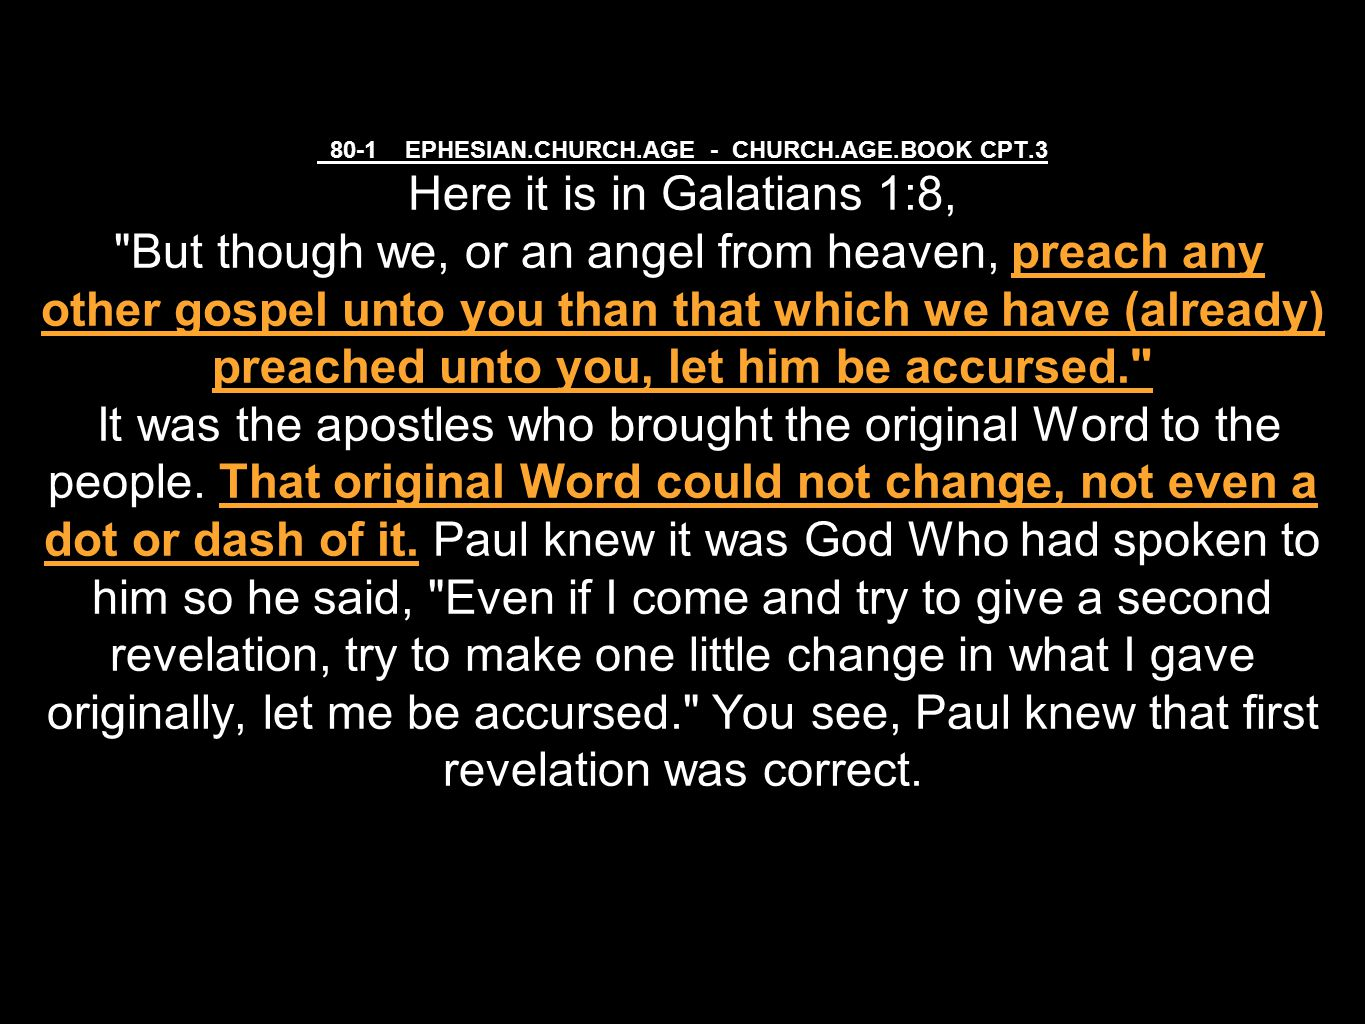 80-1 EPHESIAN.CHURCH.AGE - CHURCH.AGE.BOOK CPT.3 Here it is in Galatians 1:8, But though we, or an angel from heaven, preach any other gospel unto you than that which we have (already) preached unto you, let him be accursed. It was the apostles who brought the original Word to the people.